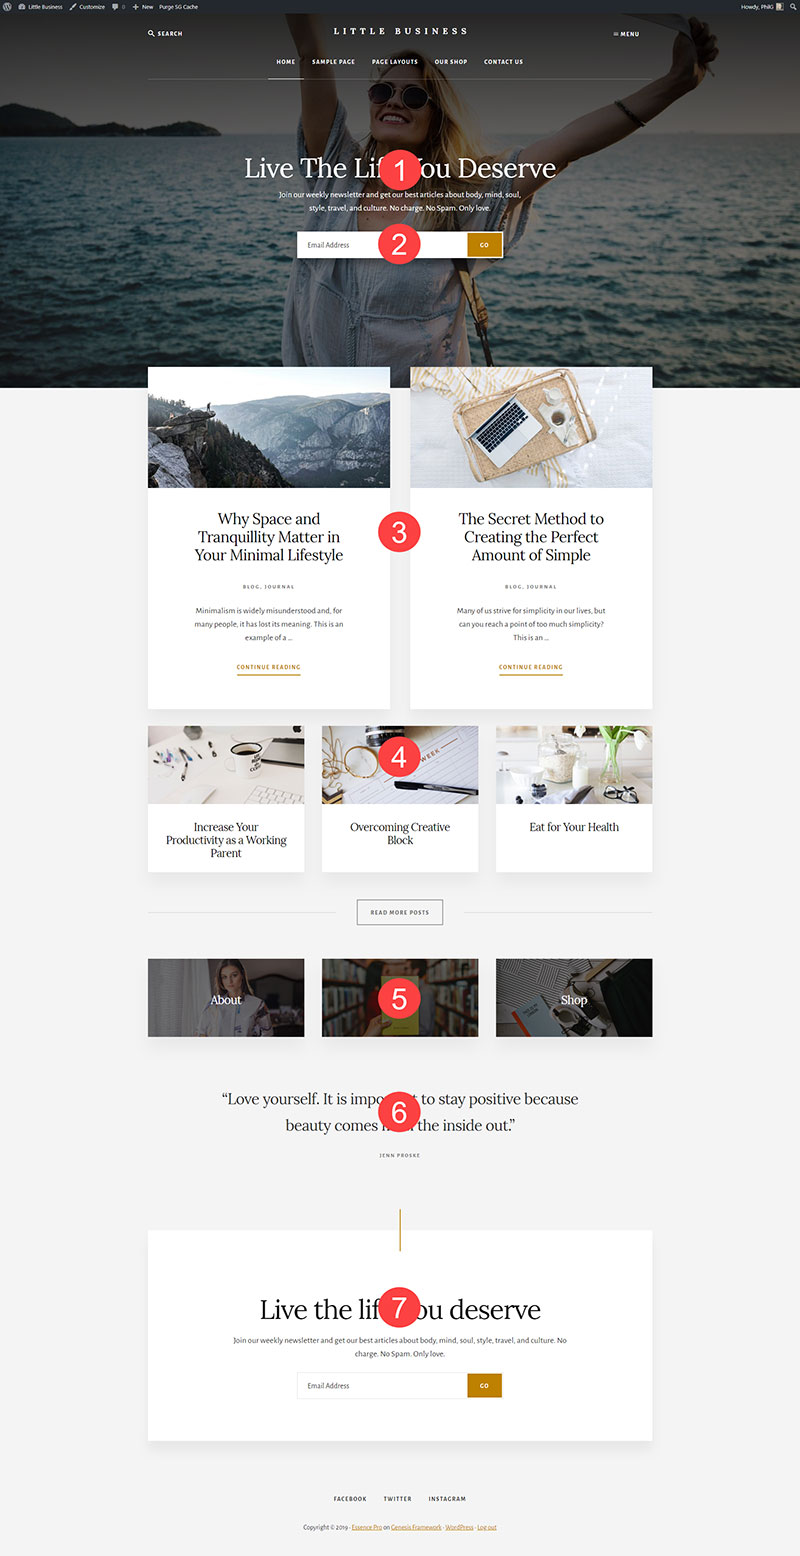 Essence Pro theme by StudioPress